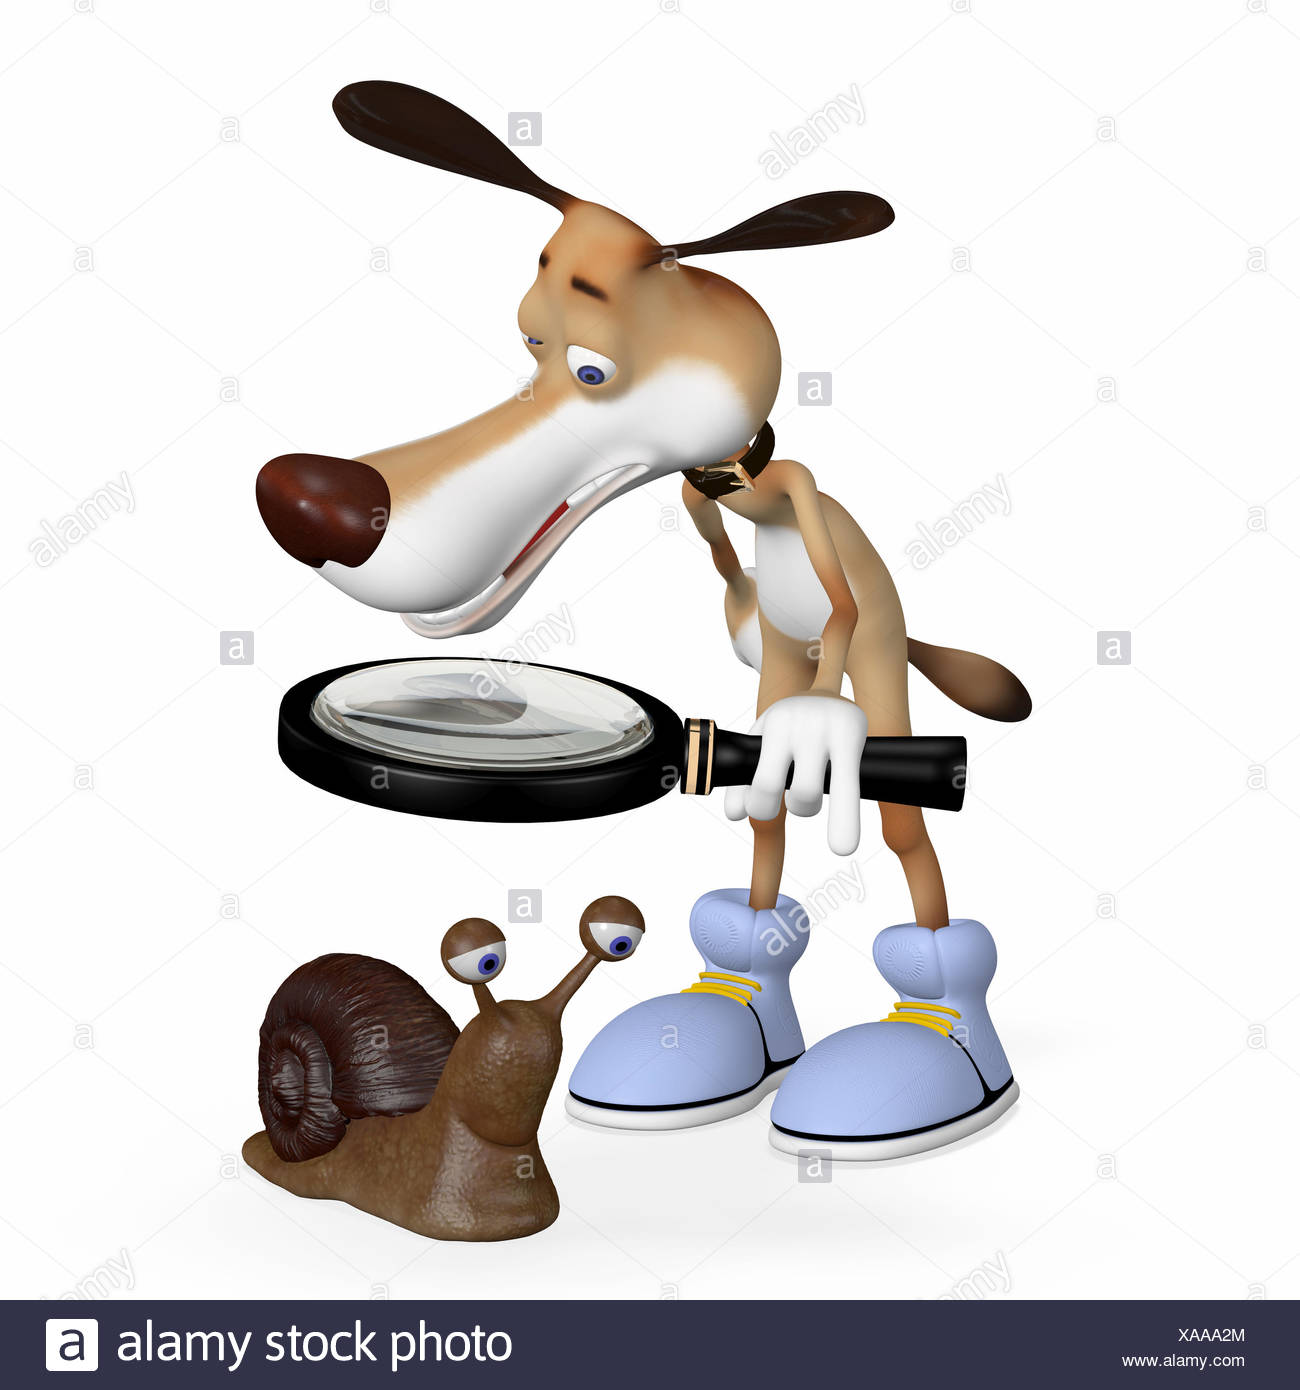 Illustration. The dog examines a mushroom. - Stock Image